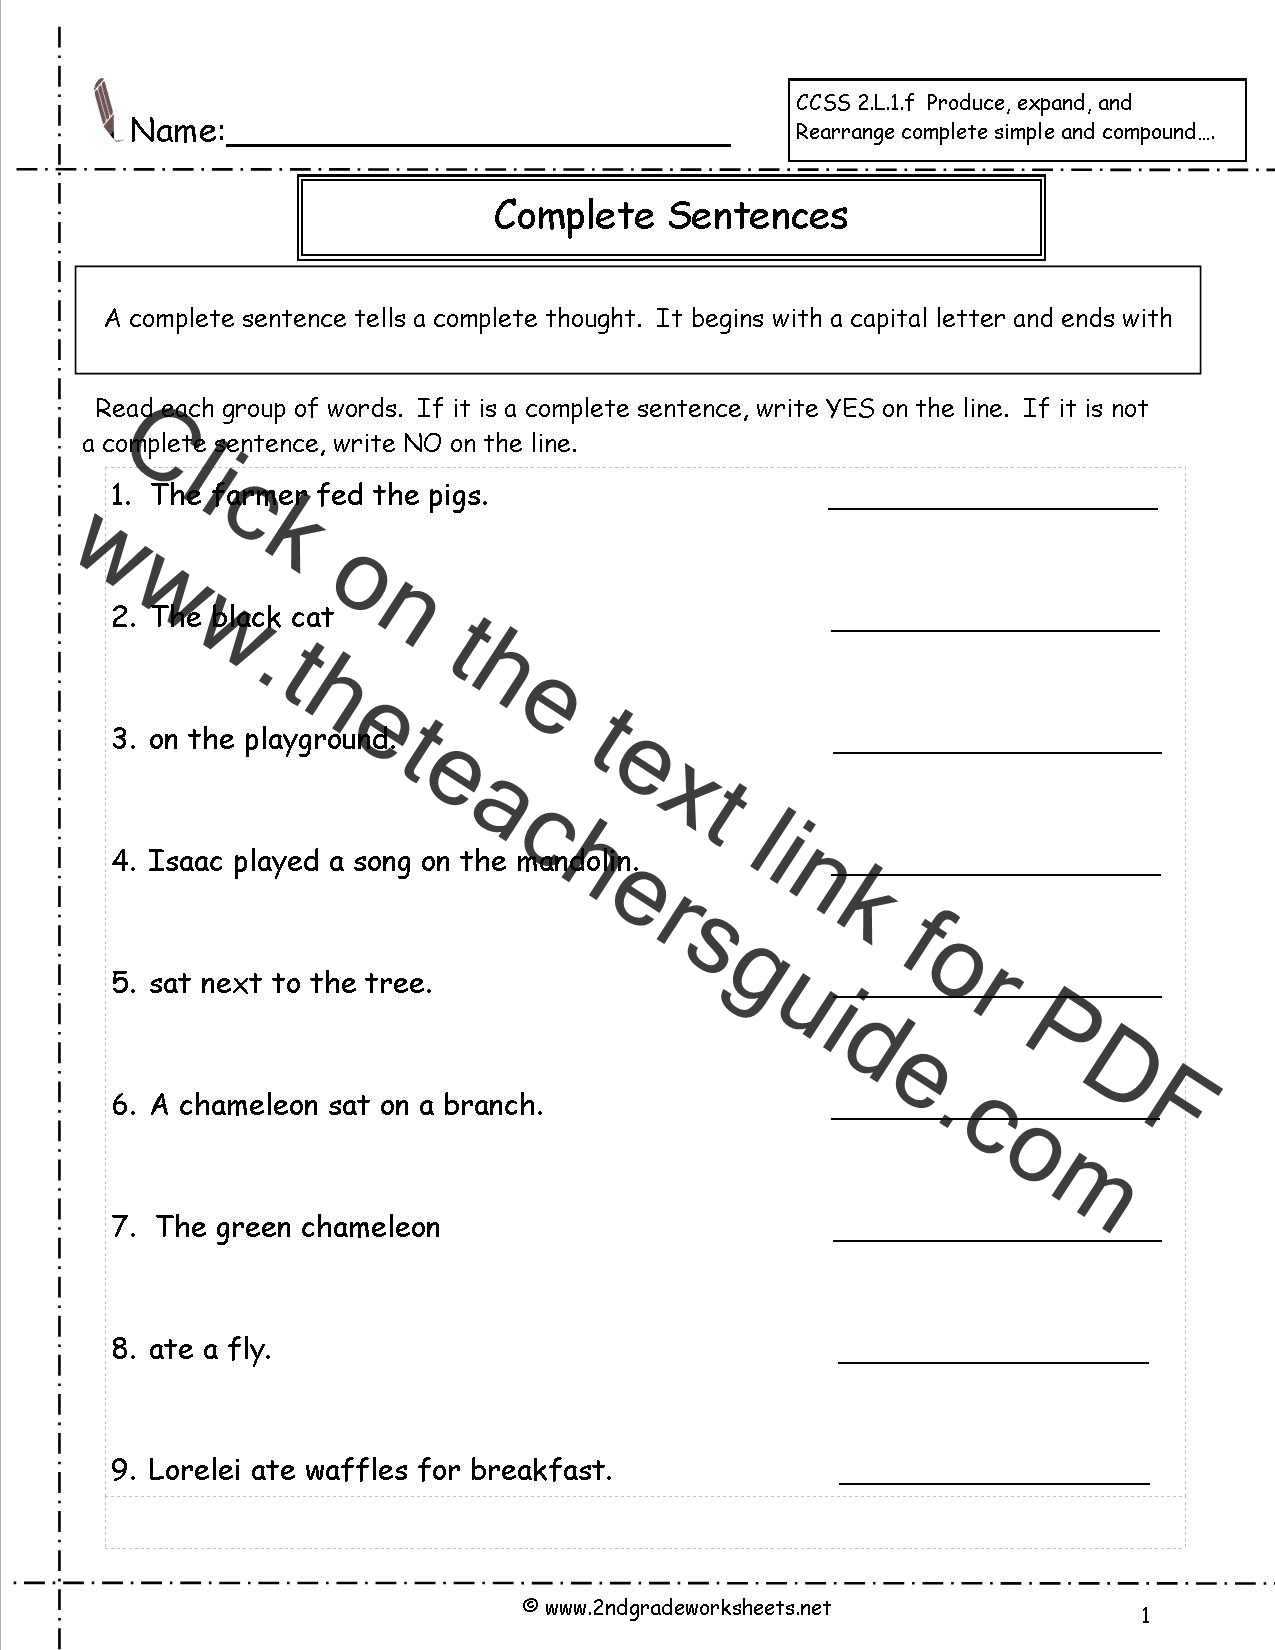 Worksheets 2nd Grade Sentence Worksheets second grade sentences worksheets ccss 2 l 1 f complete sentence worksheet